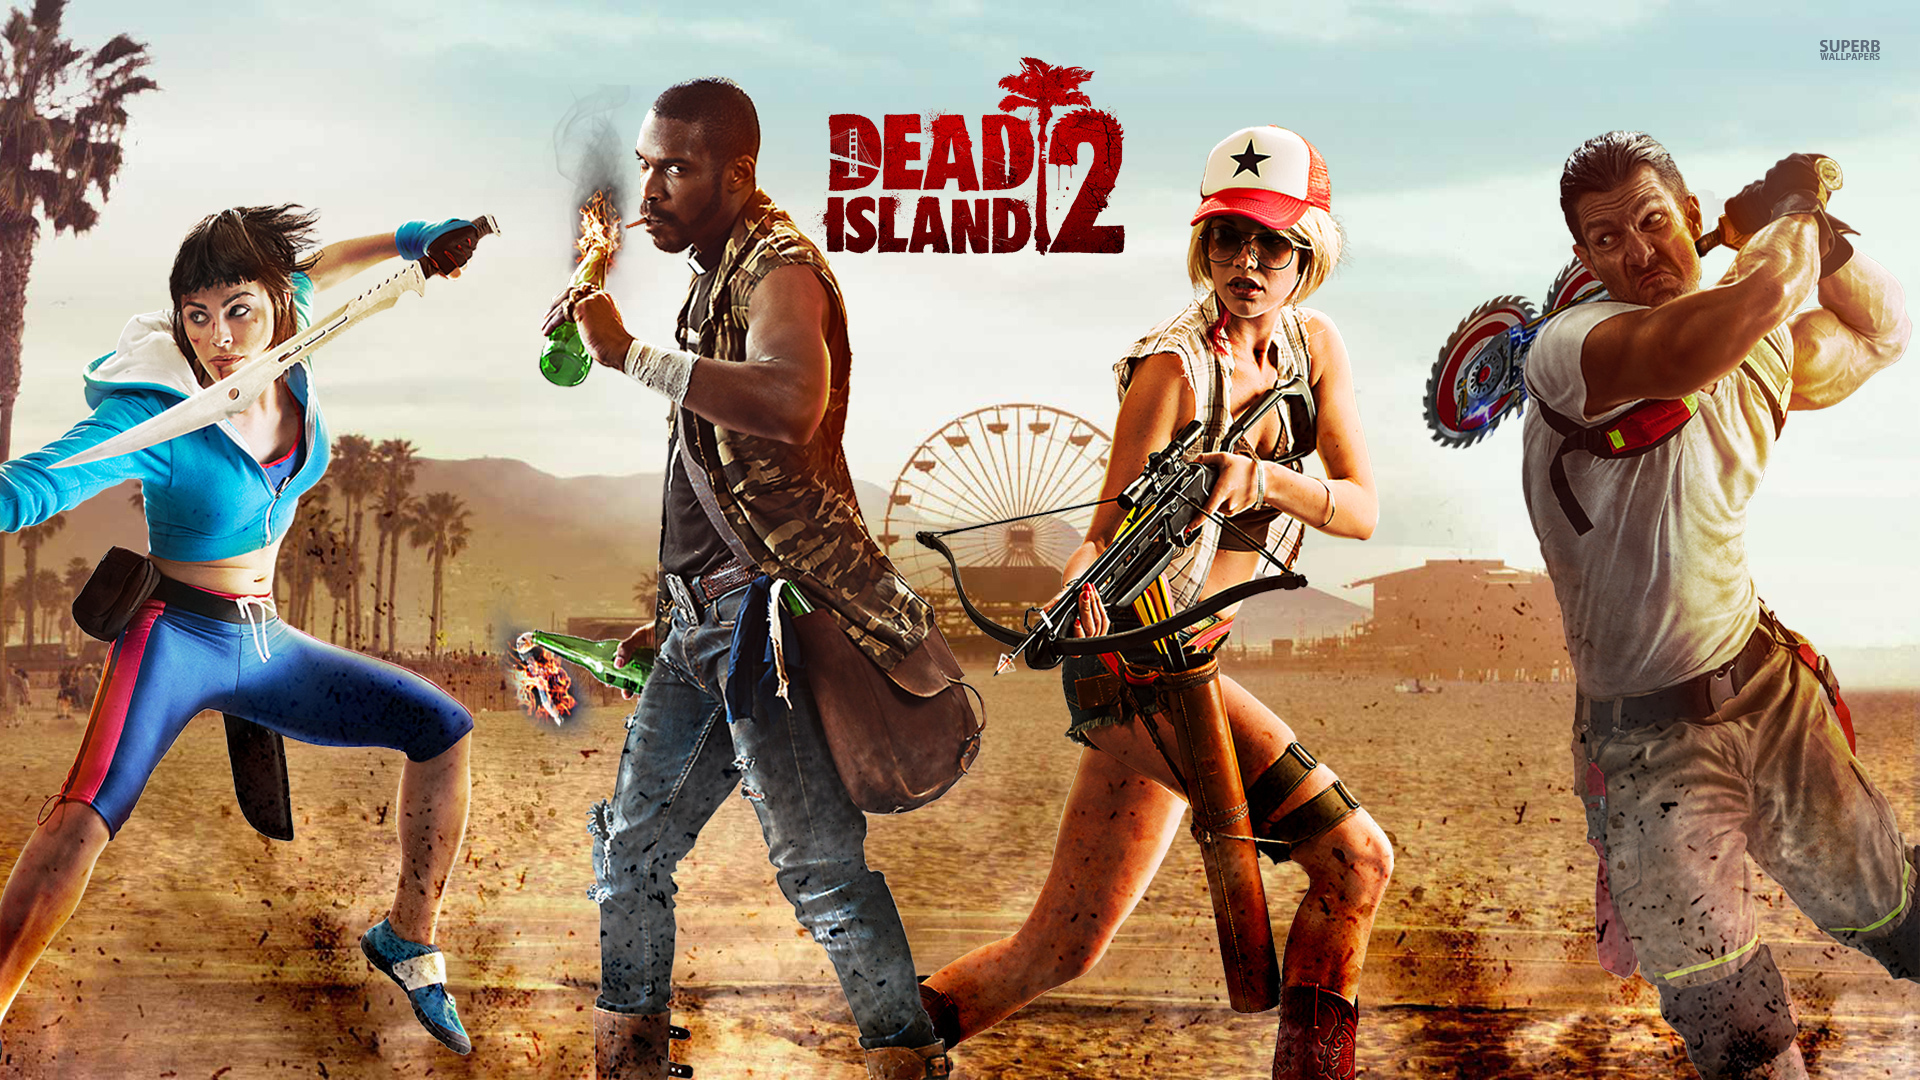 Dead Island Customization